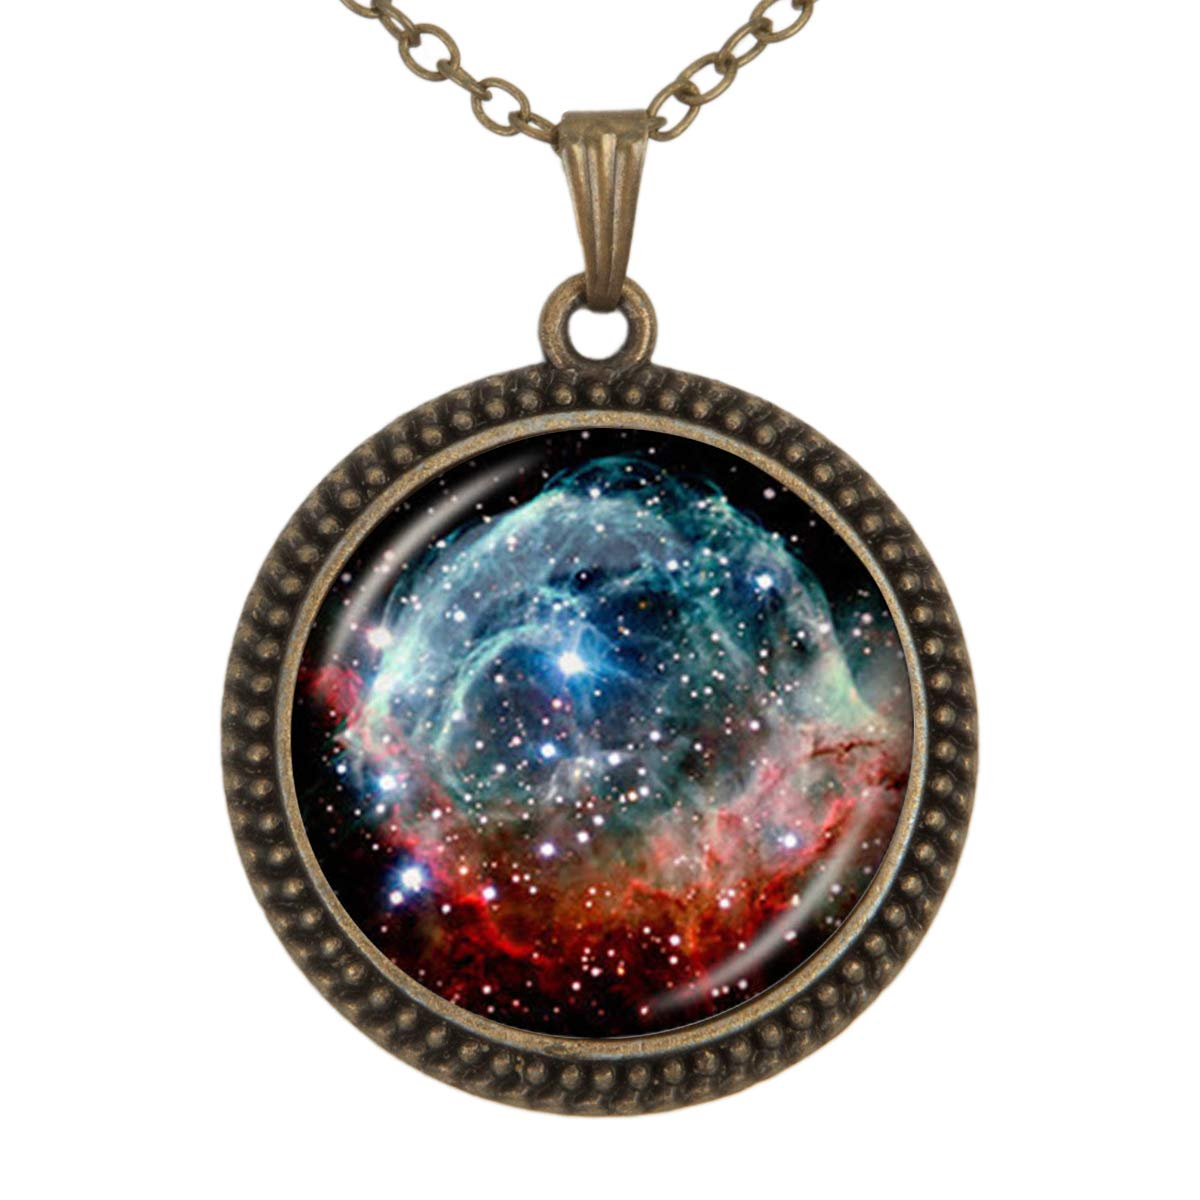 Beautiful Starry Night Pendant Necklace Vintage Bronze Chain Statement Necklace Handmade Jewelry Gifts